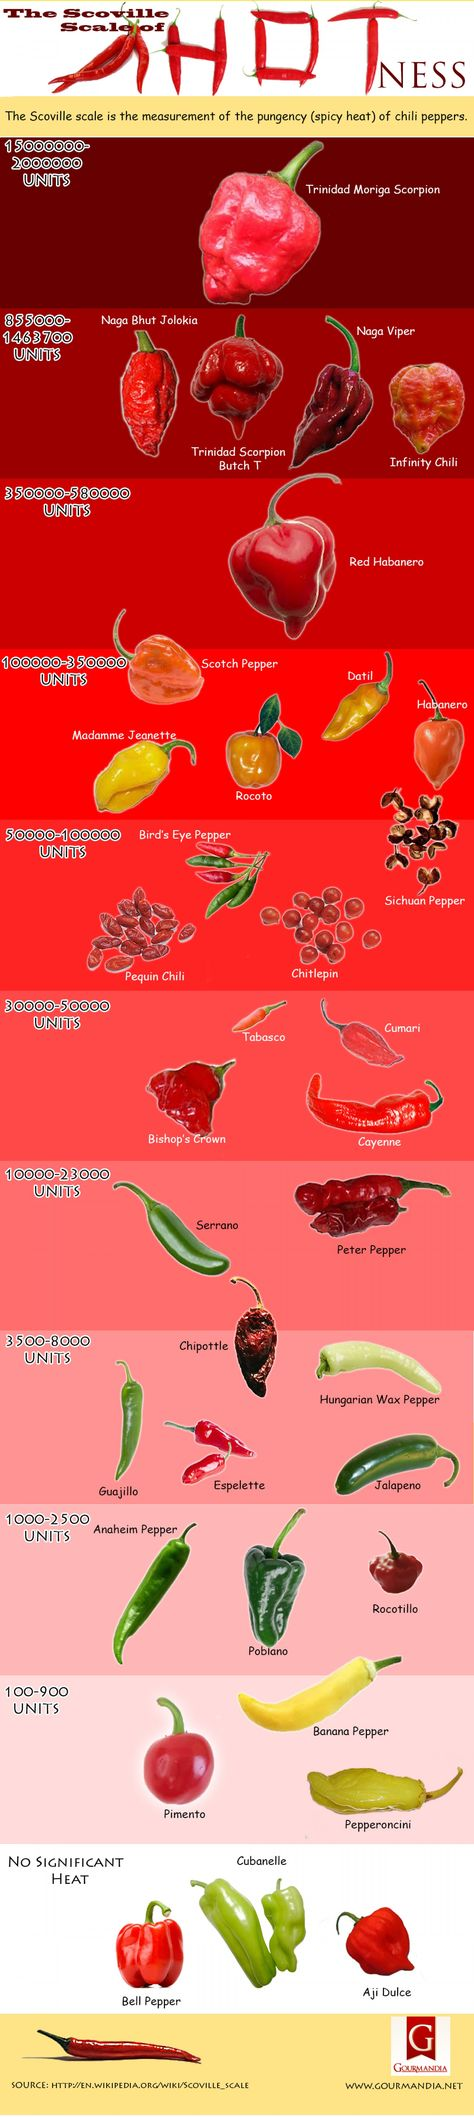 The Scoville Scale Of Hotness Infographic Infografia Stuffed Peppers Food Info Stuffed Hot Peppers